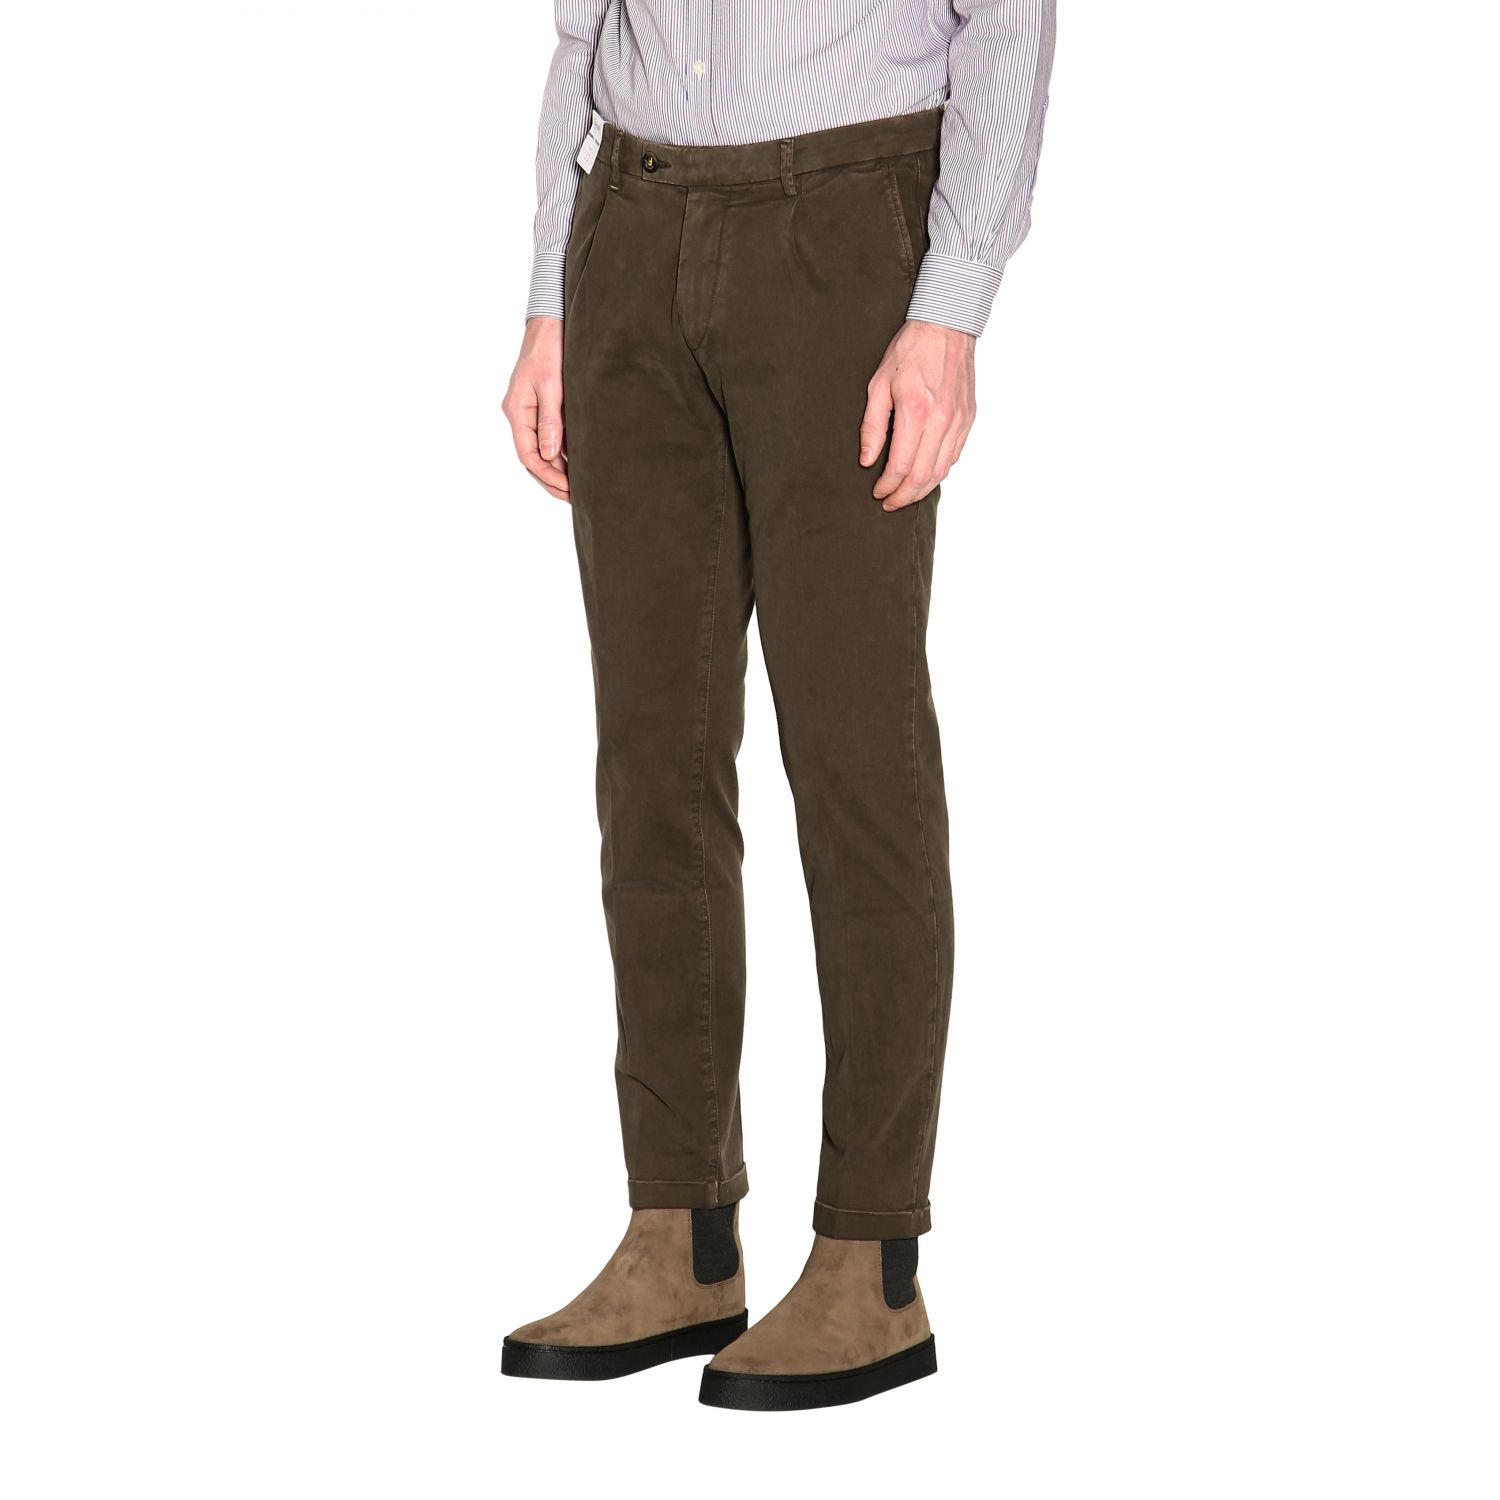 Pants men Re-hash green 4